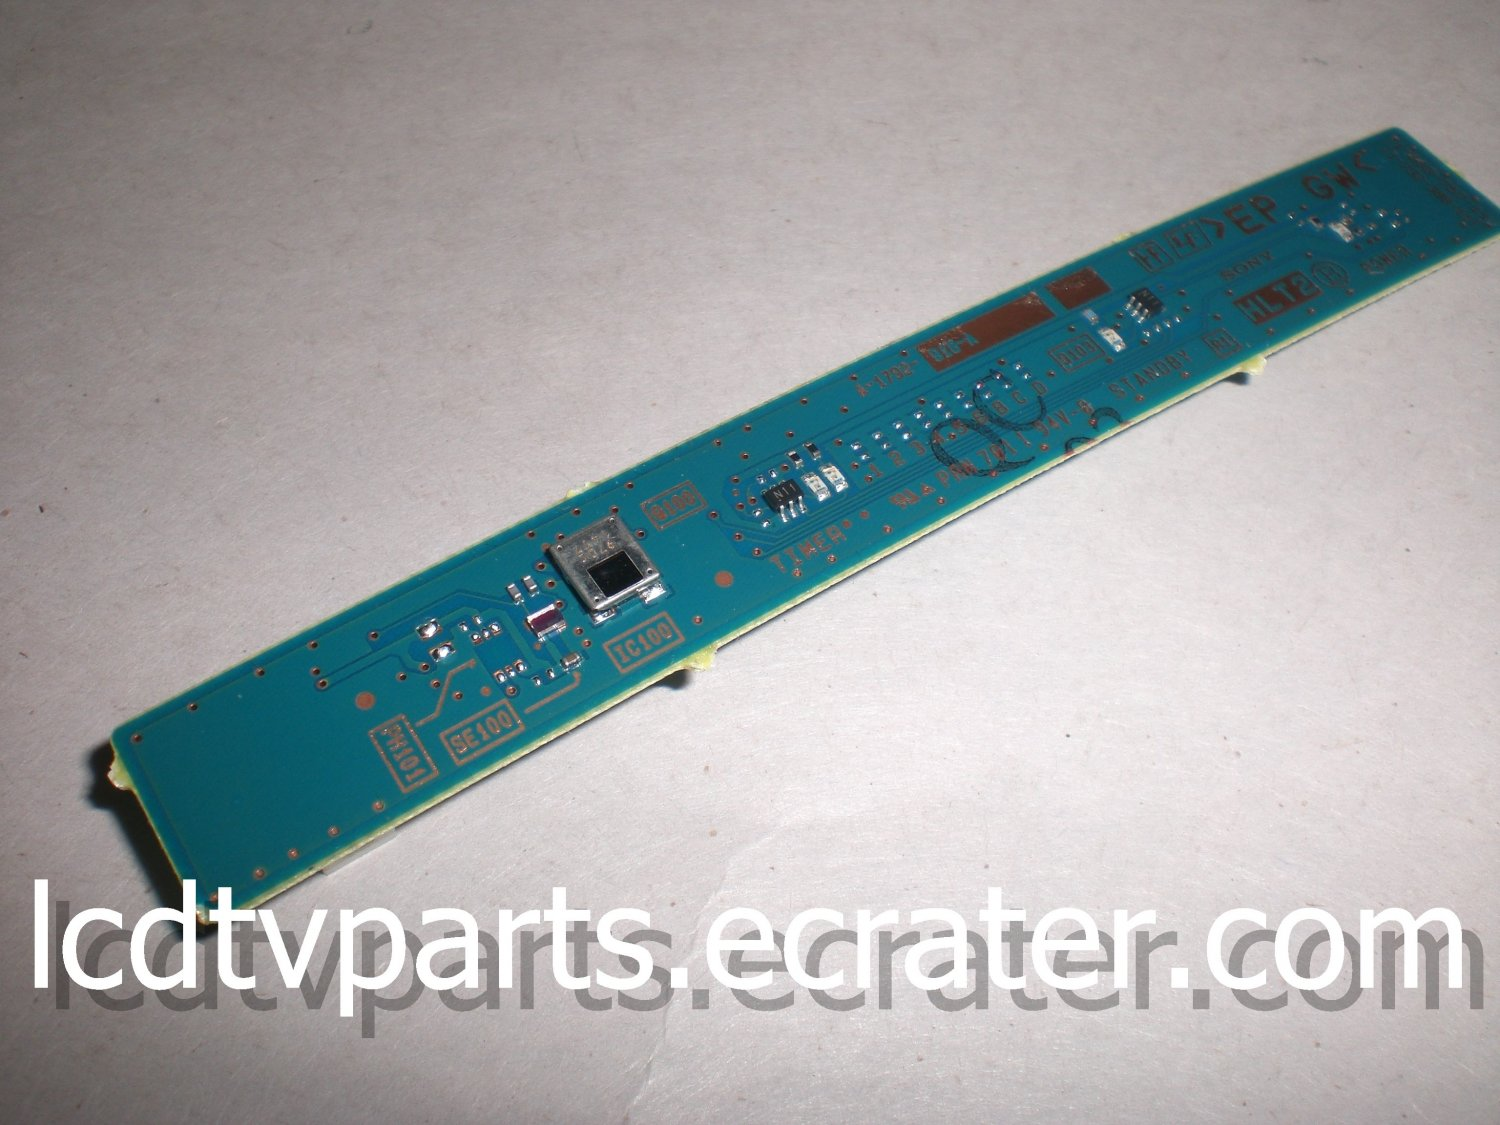 A1792920A, A-1792-918-A, 1-883-757-11, 1-732-388-11, LED IR Assy Board For SONY XBR-46HX929